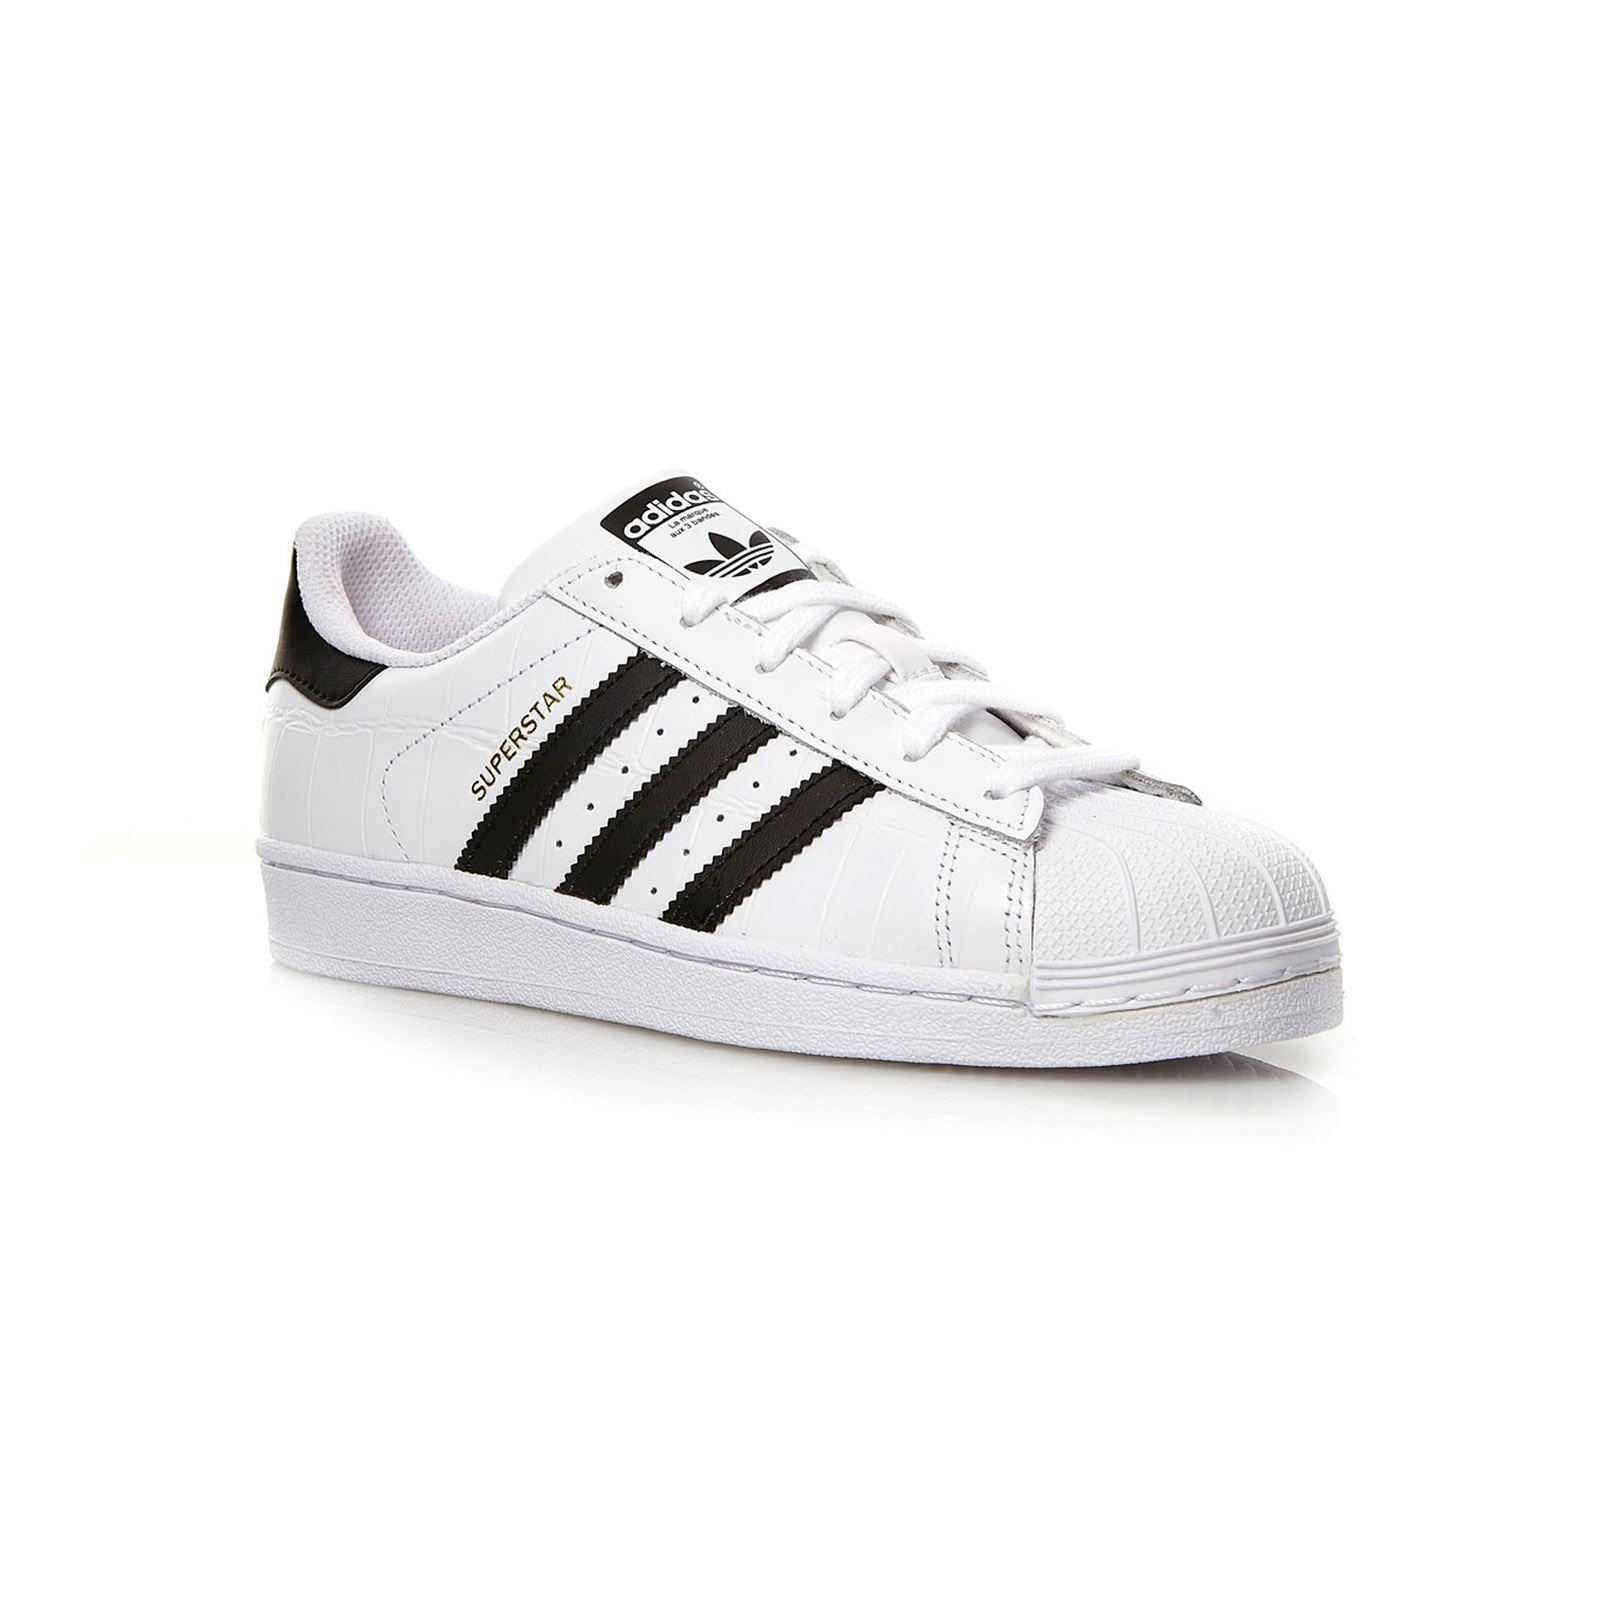 adidas Originals Superstar - Baskets cuir bi-matière - blanc ... 0daa2d5f4c4